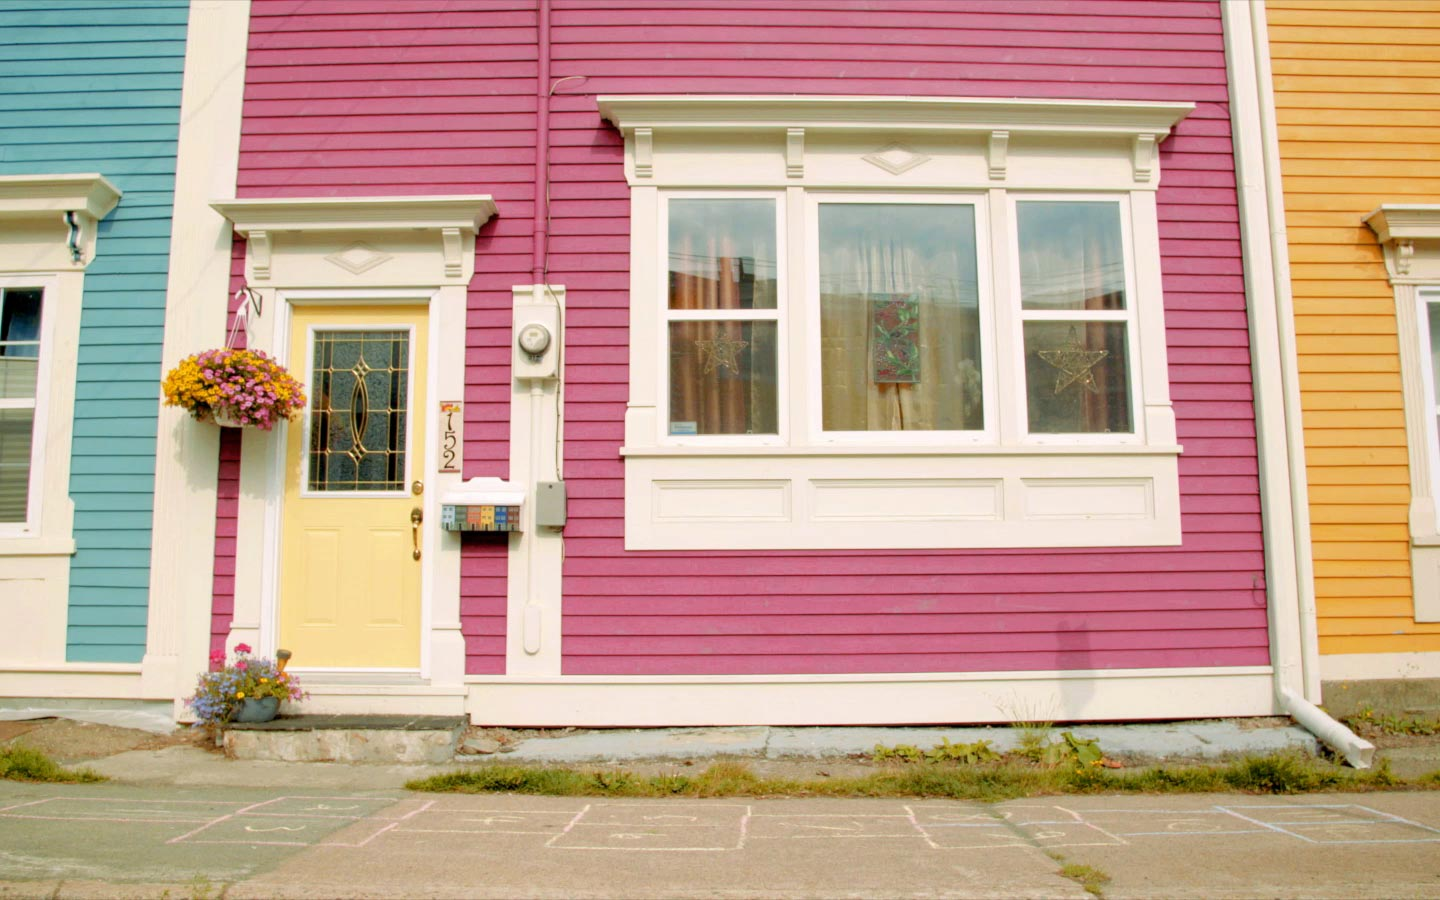 Newfoundland and Labrador Tourism - Paint the Town Jellybean Row